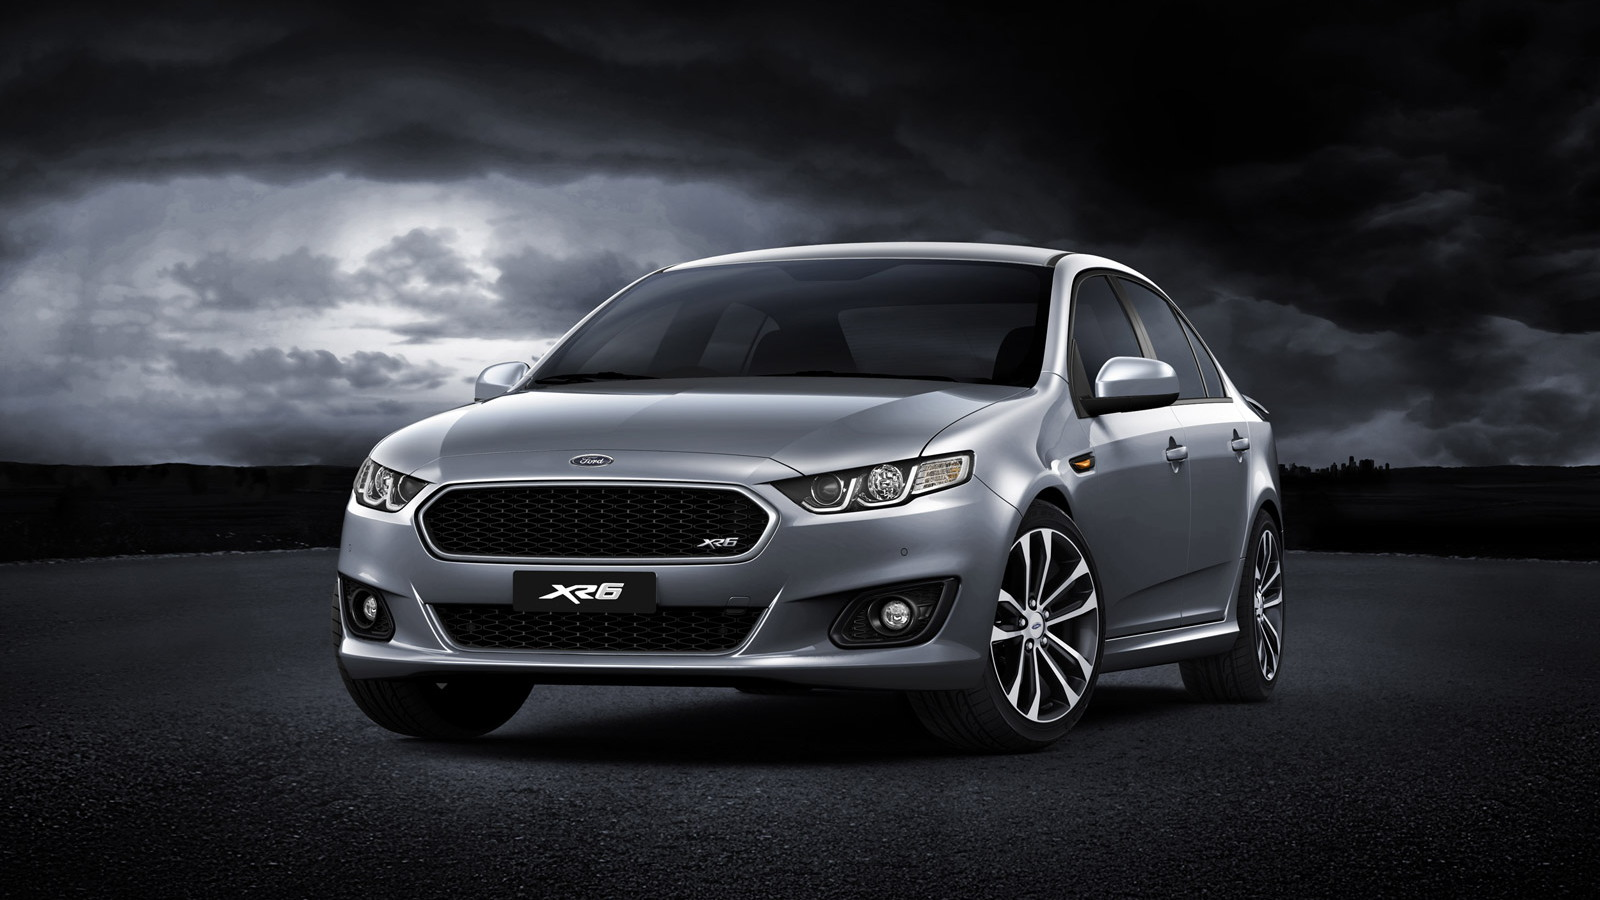 2015 Ford Falcon XR6